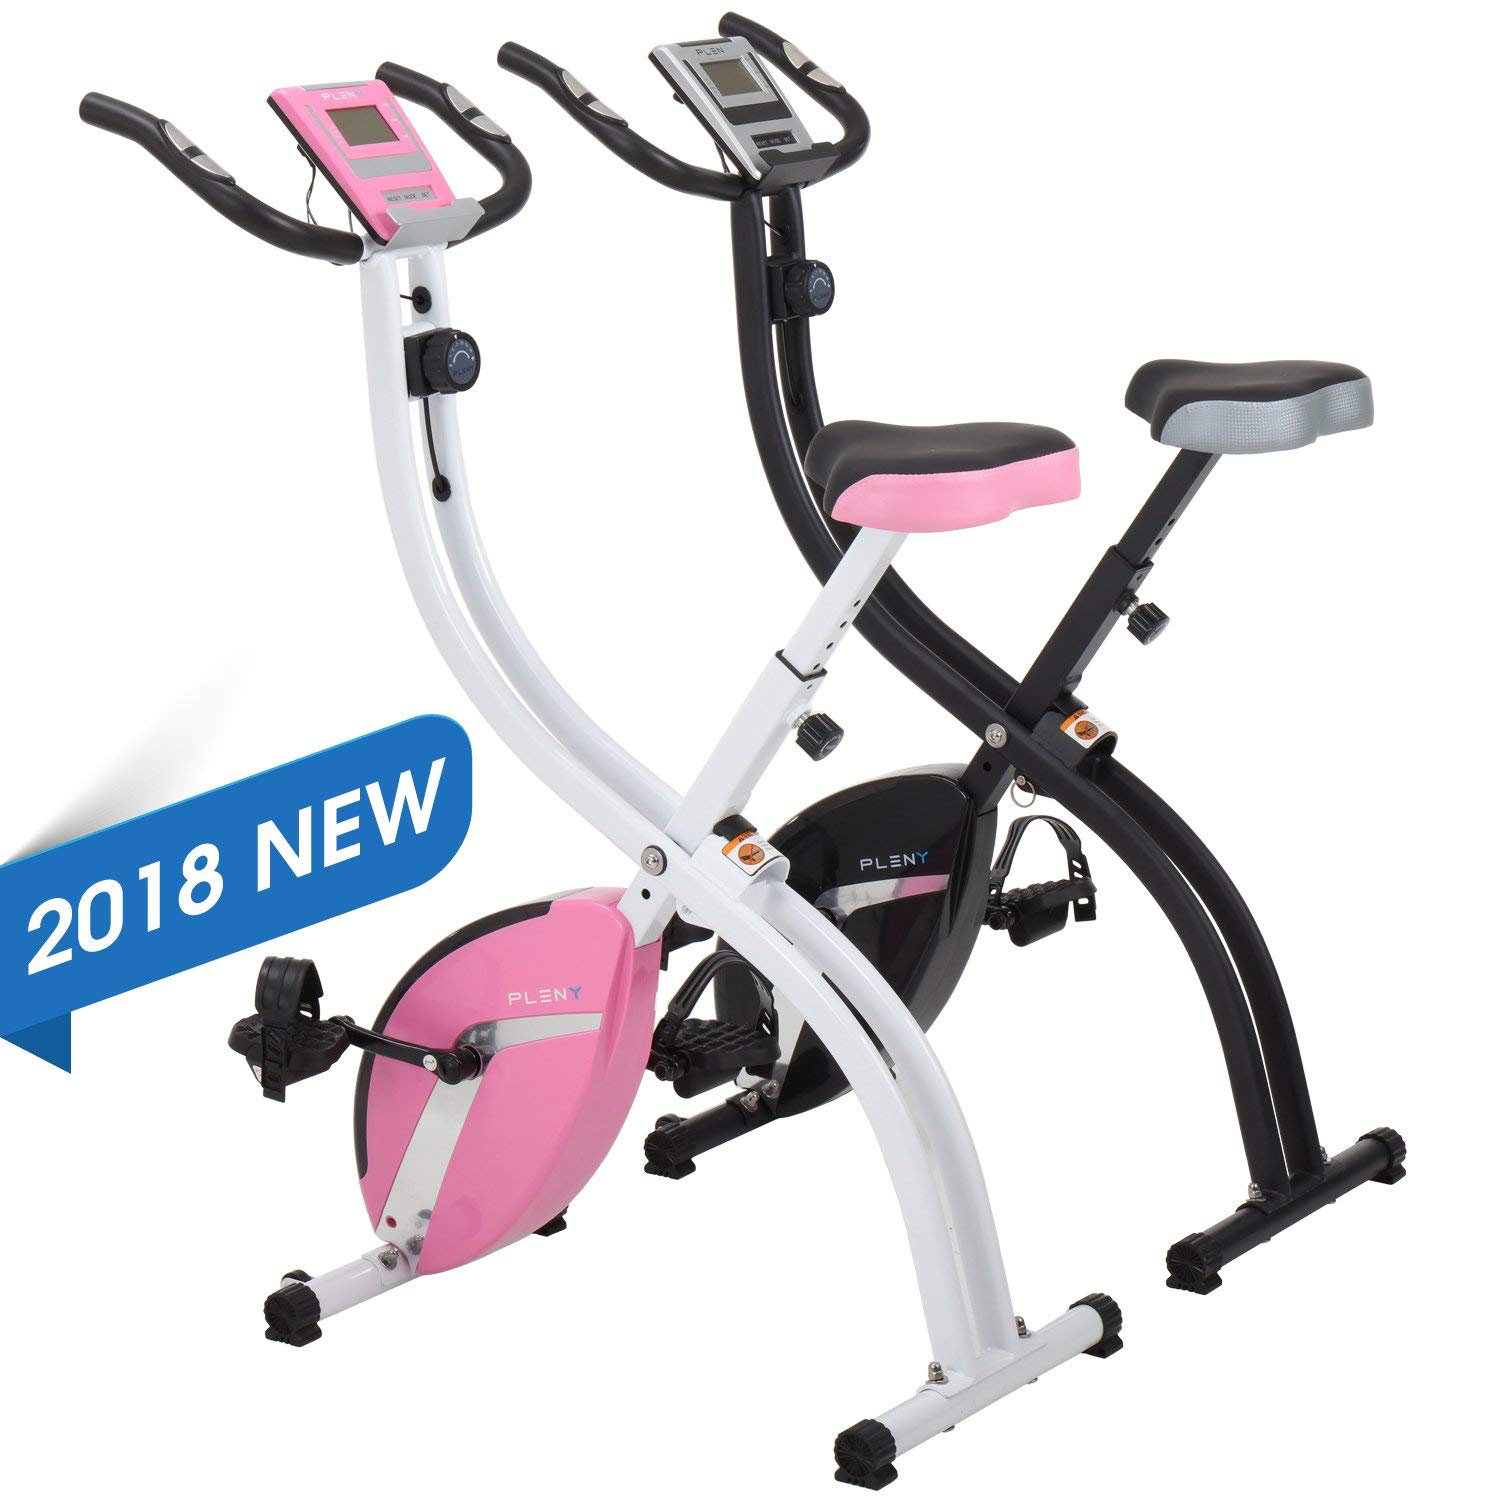 image 24 5 Best Stationary Exercise Bikes 2021 - Don't Buy Before You Read This, Click Here